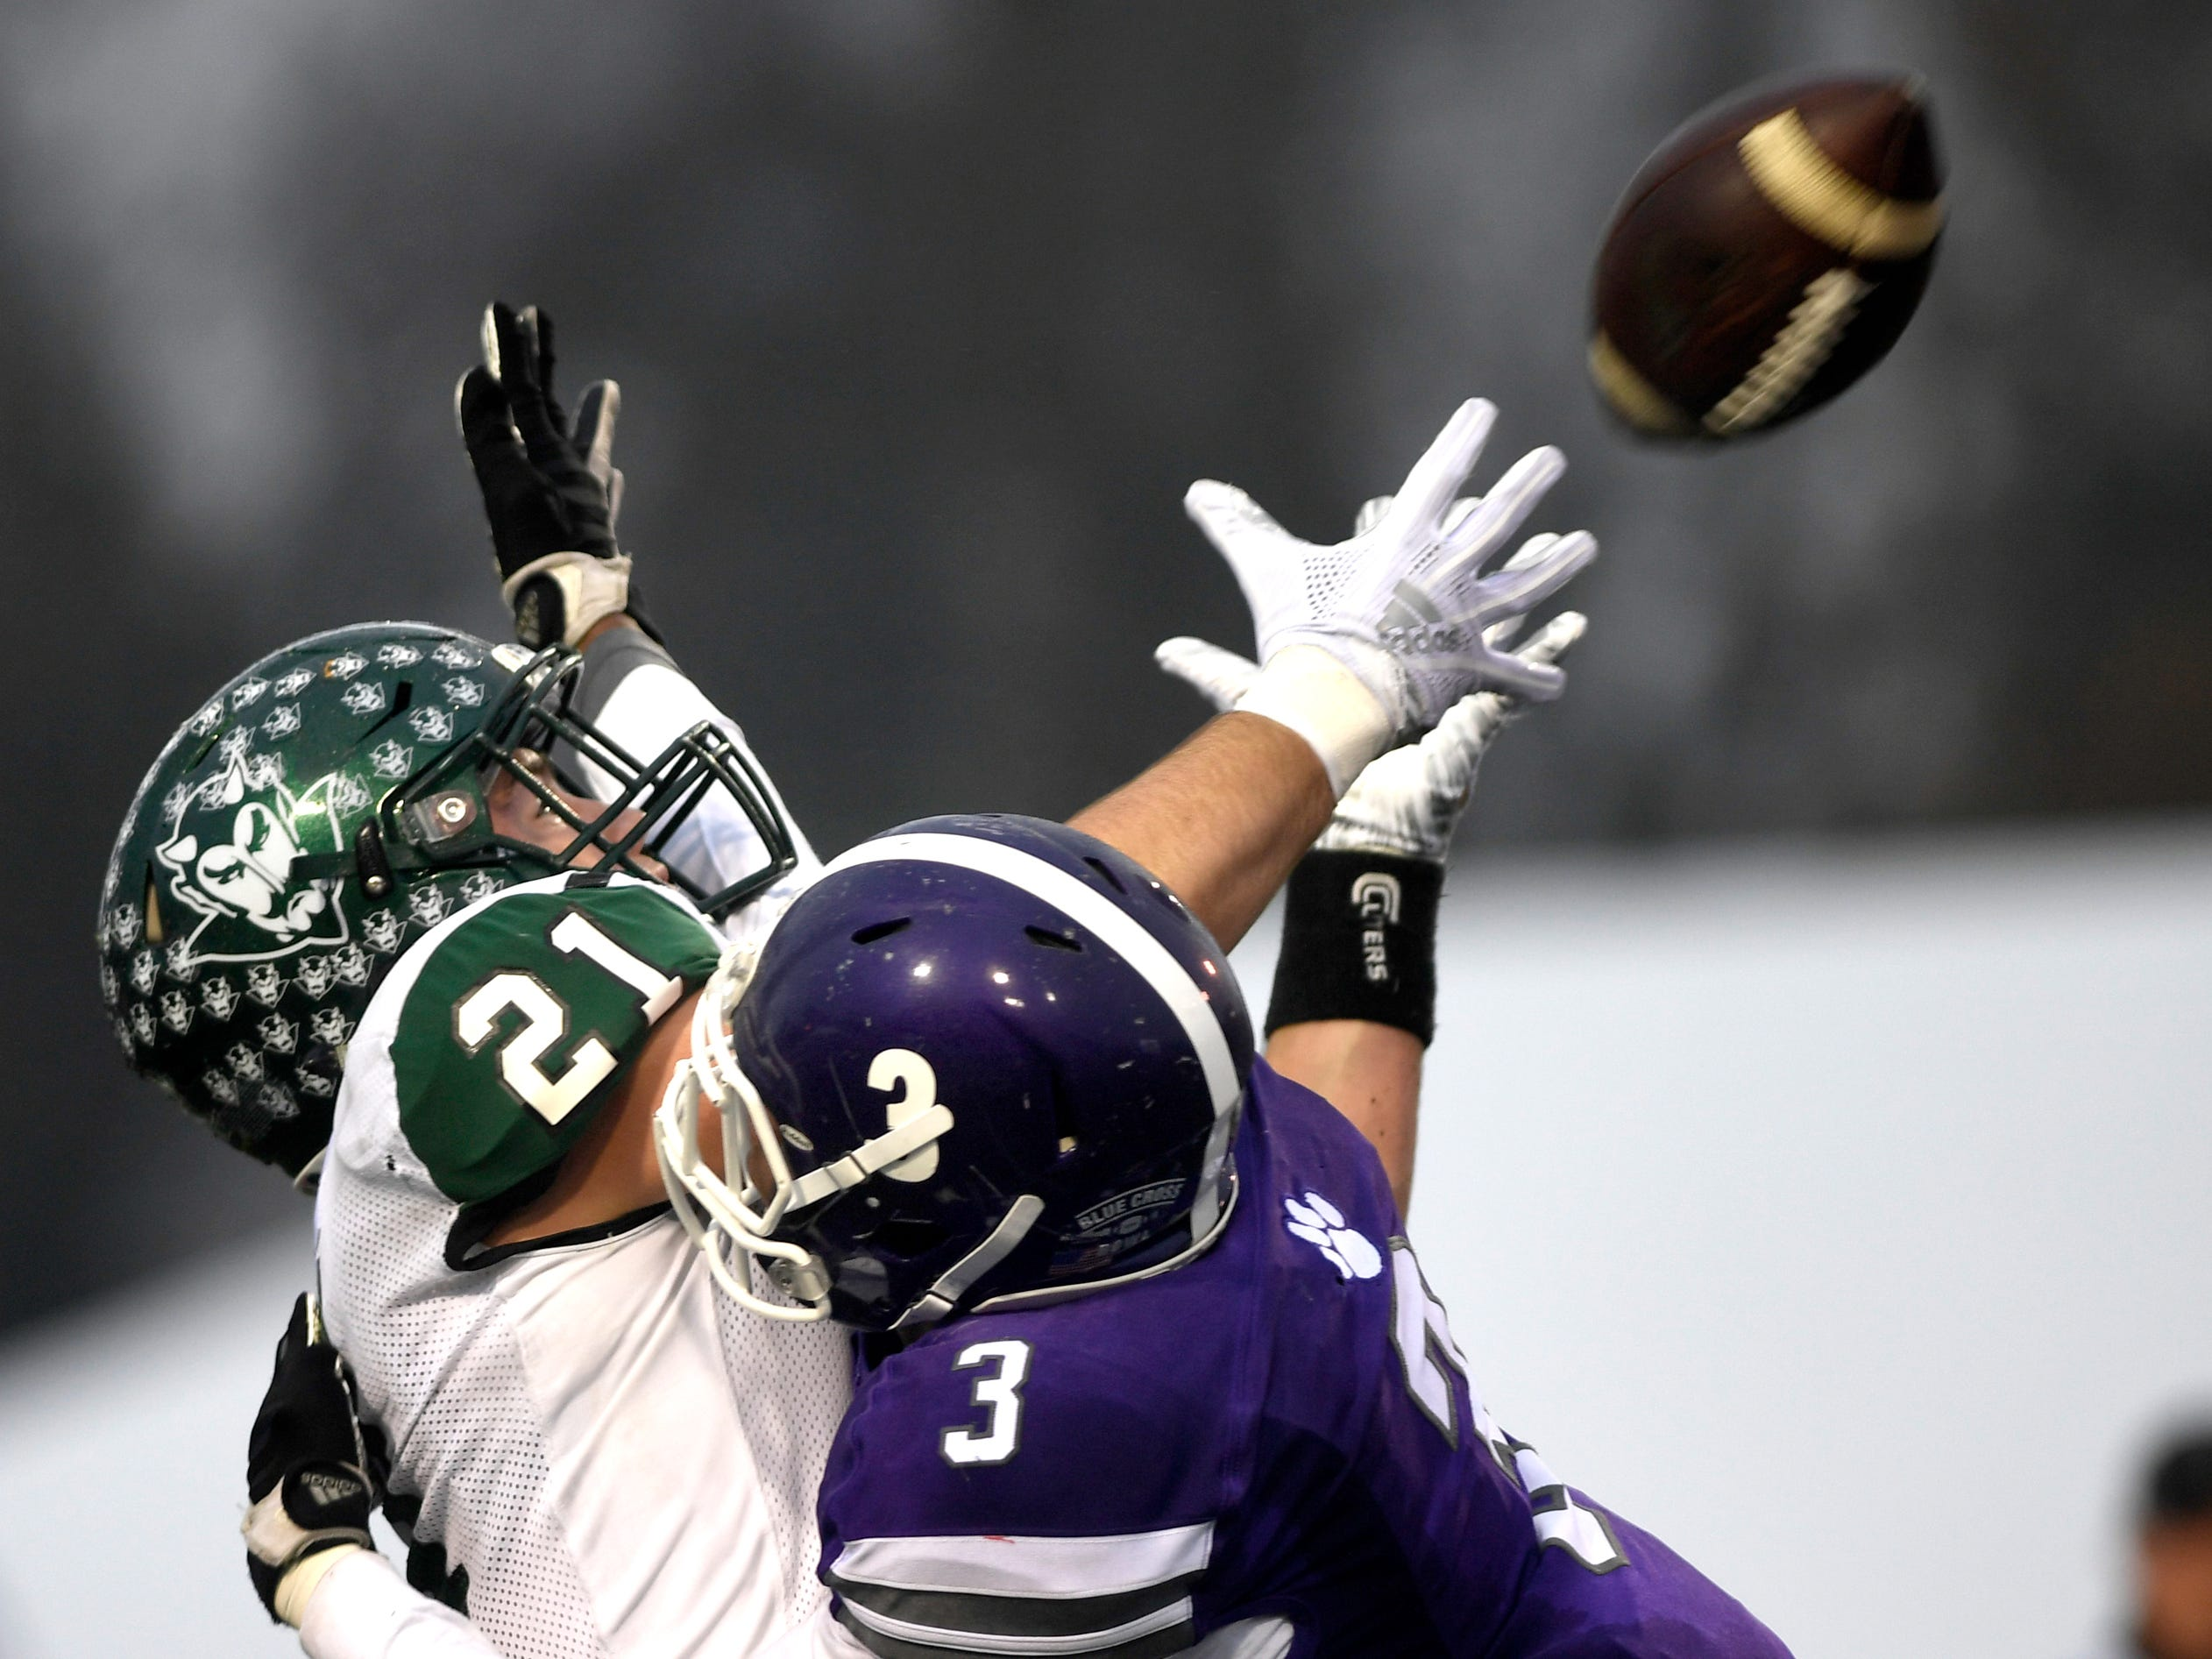 Greeneville's Cameron Hite (21) attempts to make a catch as Haywood's Marquis Pugh (3) covers Hite during the Class 4A BlueCross Bowl state championship Thursday, Nov. 29, 2018, at Tennessee Tech's Tucker Stadium in Cookeville, Tenn.